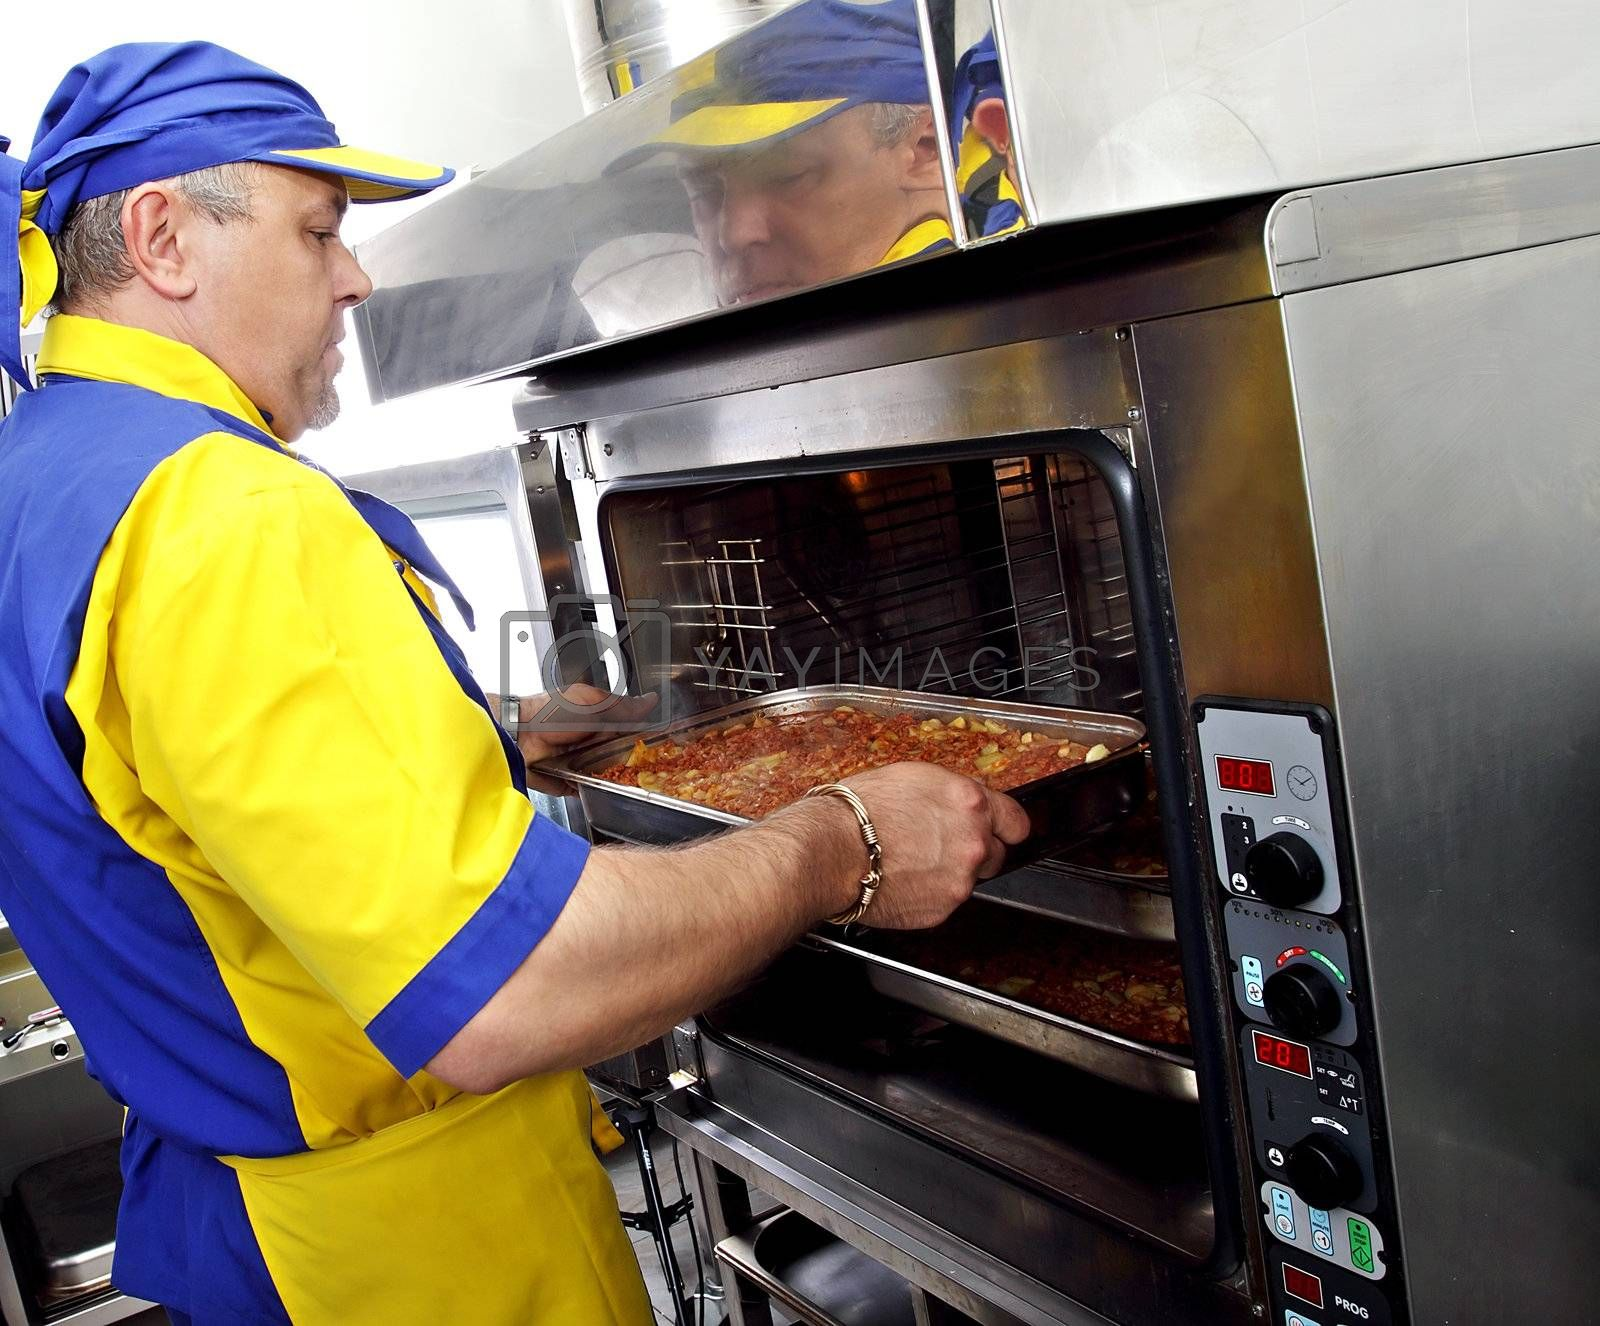 a cook inserts a dish in the oven